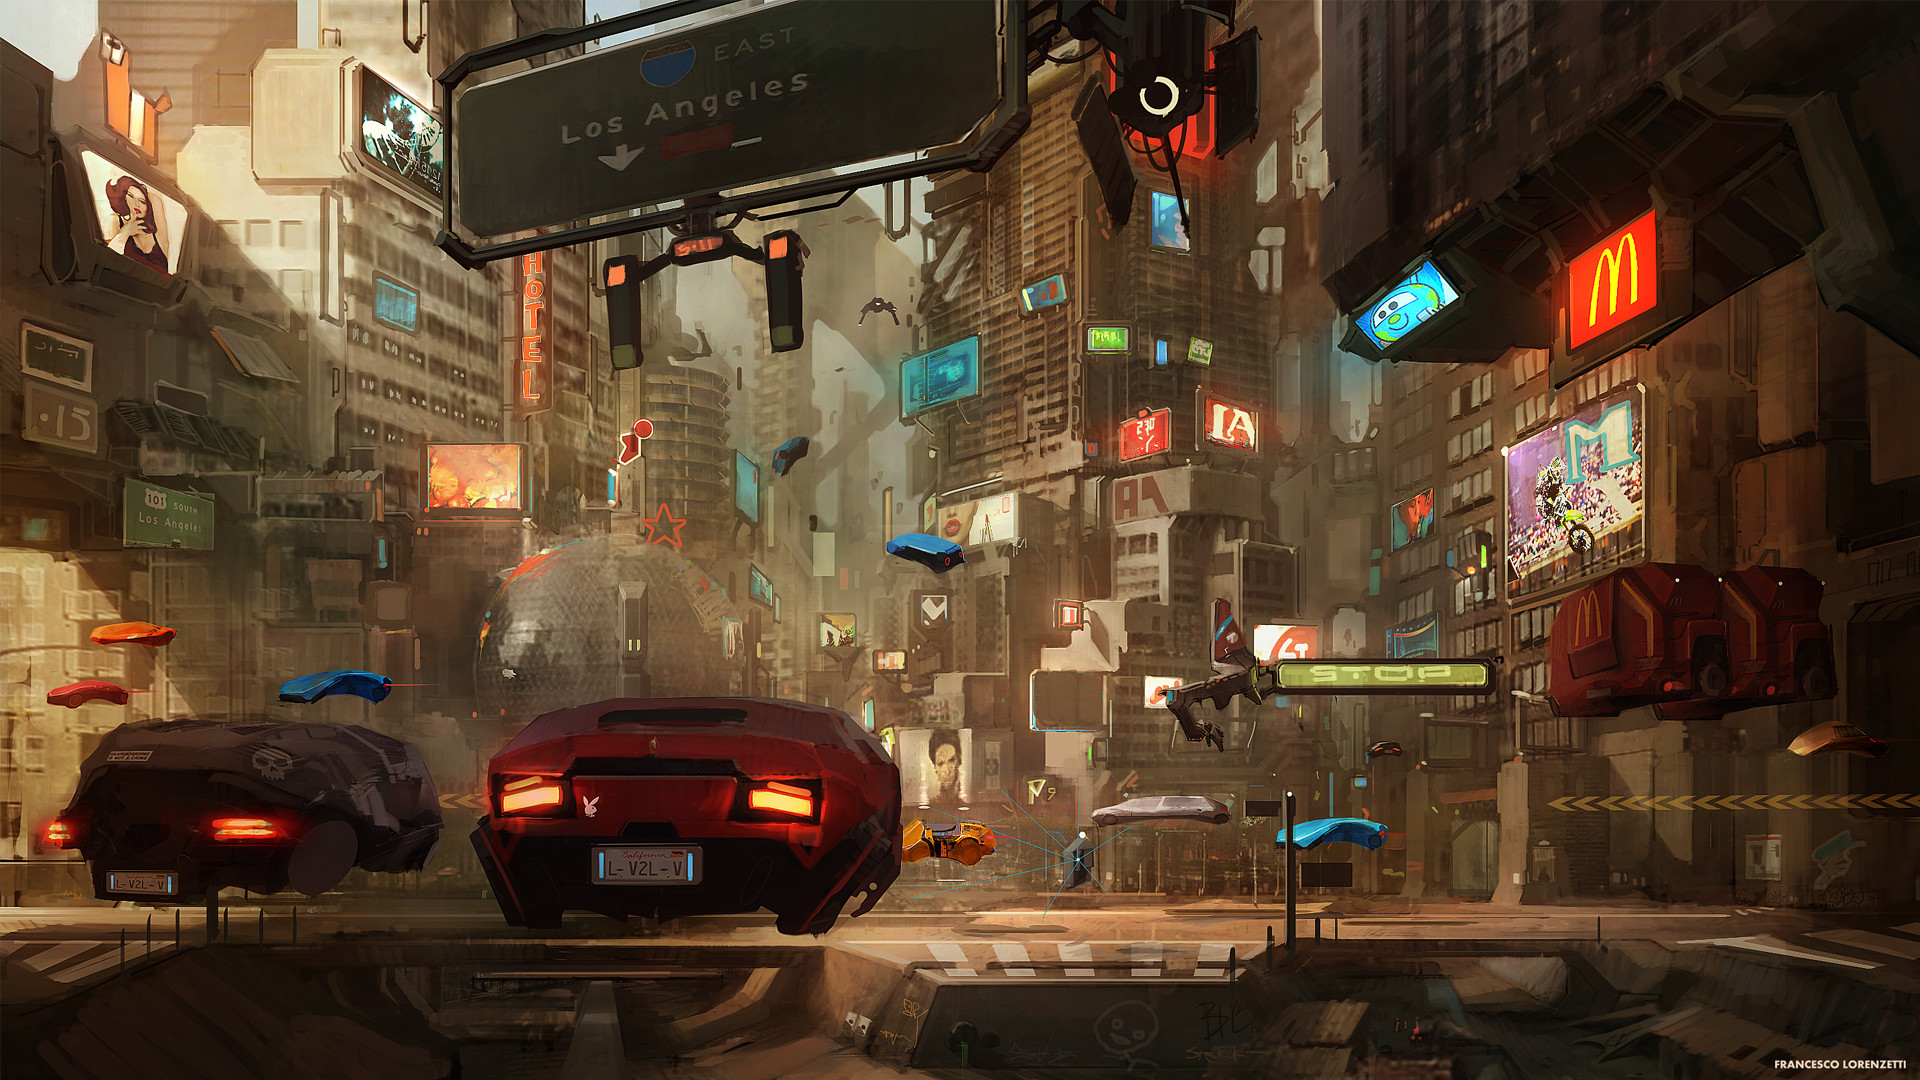 Cyberpunk Art Examples Of Sci Fi City Illustrations And Awesome Characters